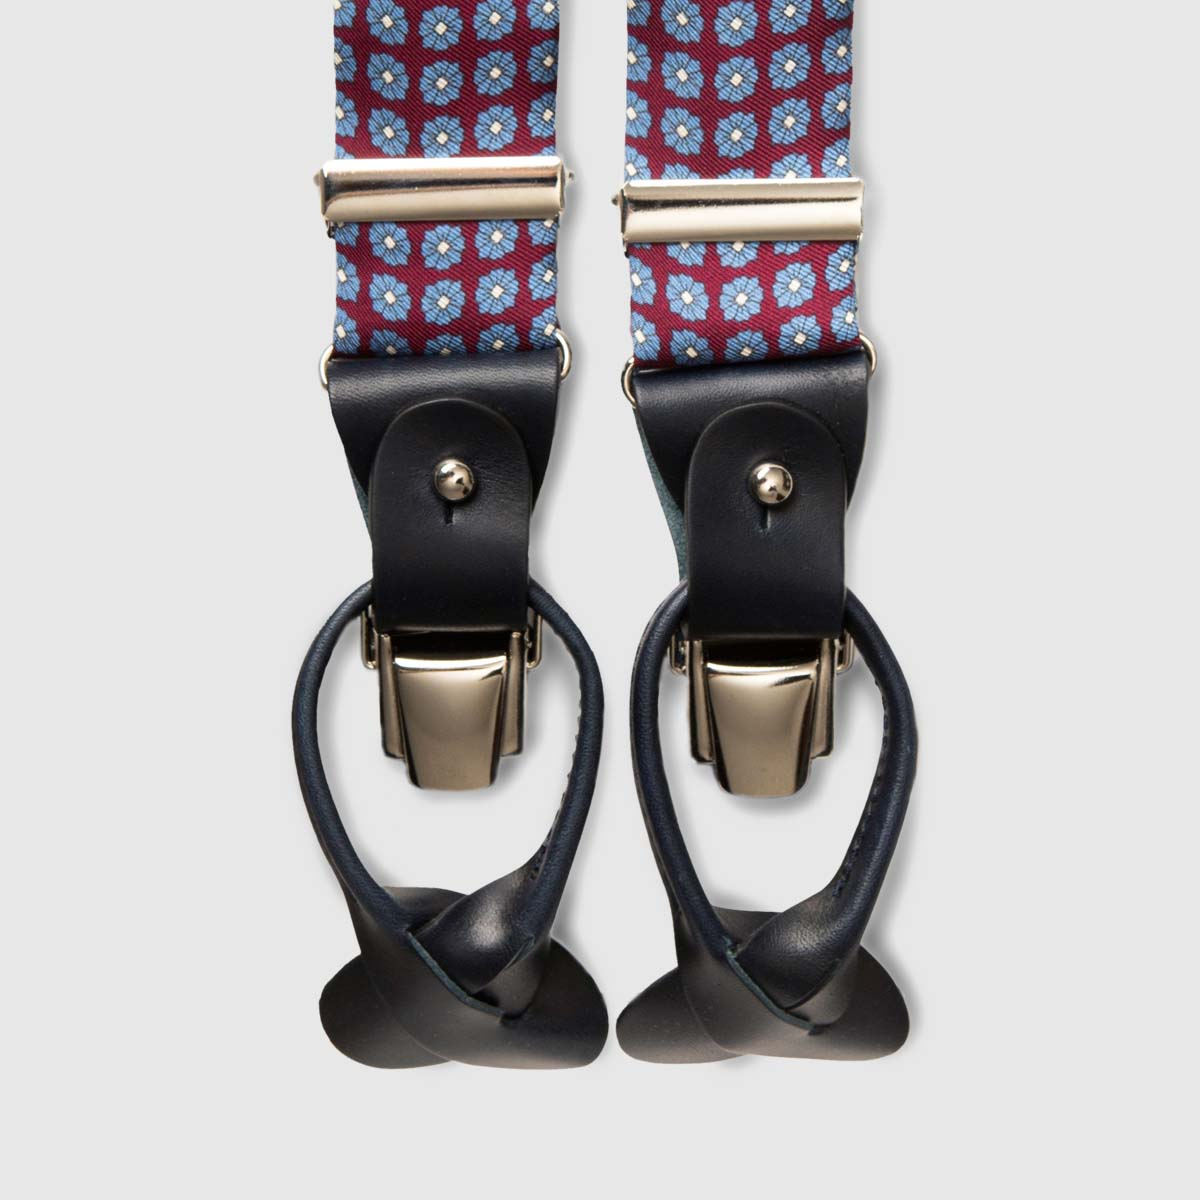 Printed Silk Bordeaux braces with black leather ends